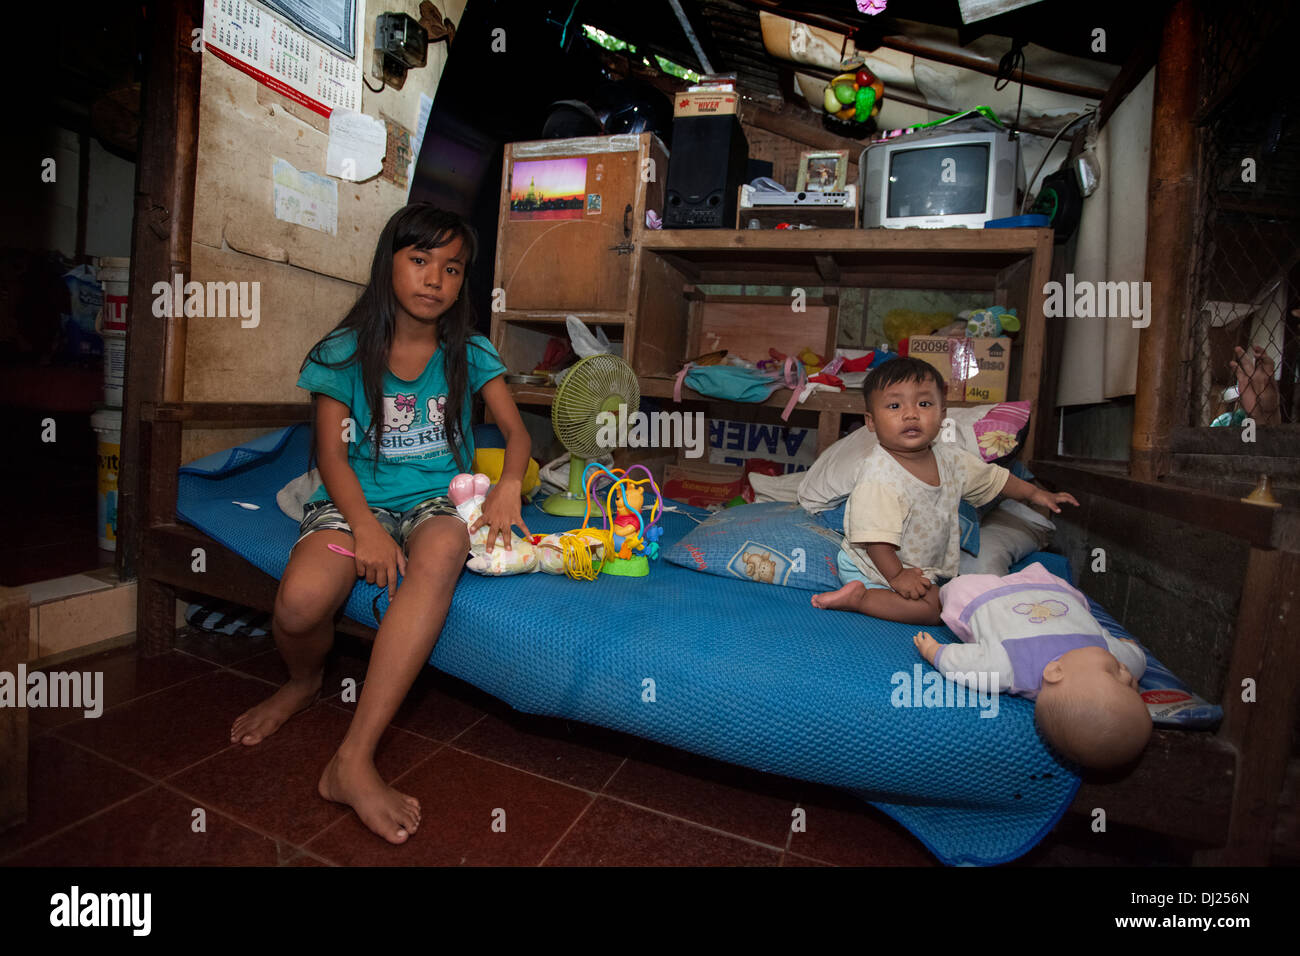 Children Disfigured family crippled poor Bali poverty challenged extreme poor bellow standard Indonesia 29 house conditions hars - Stock Image